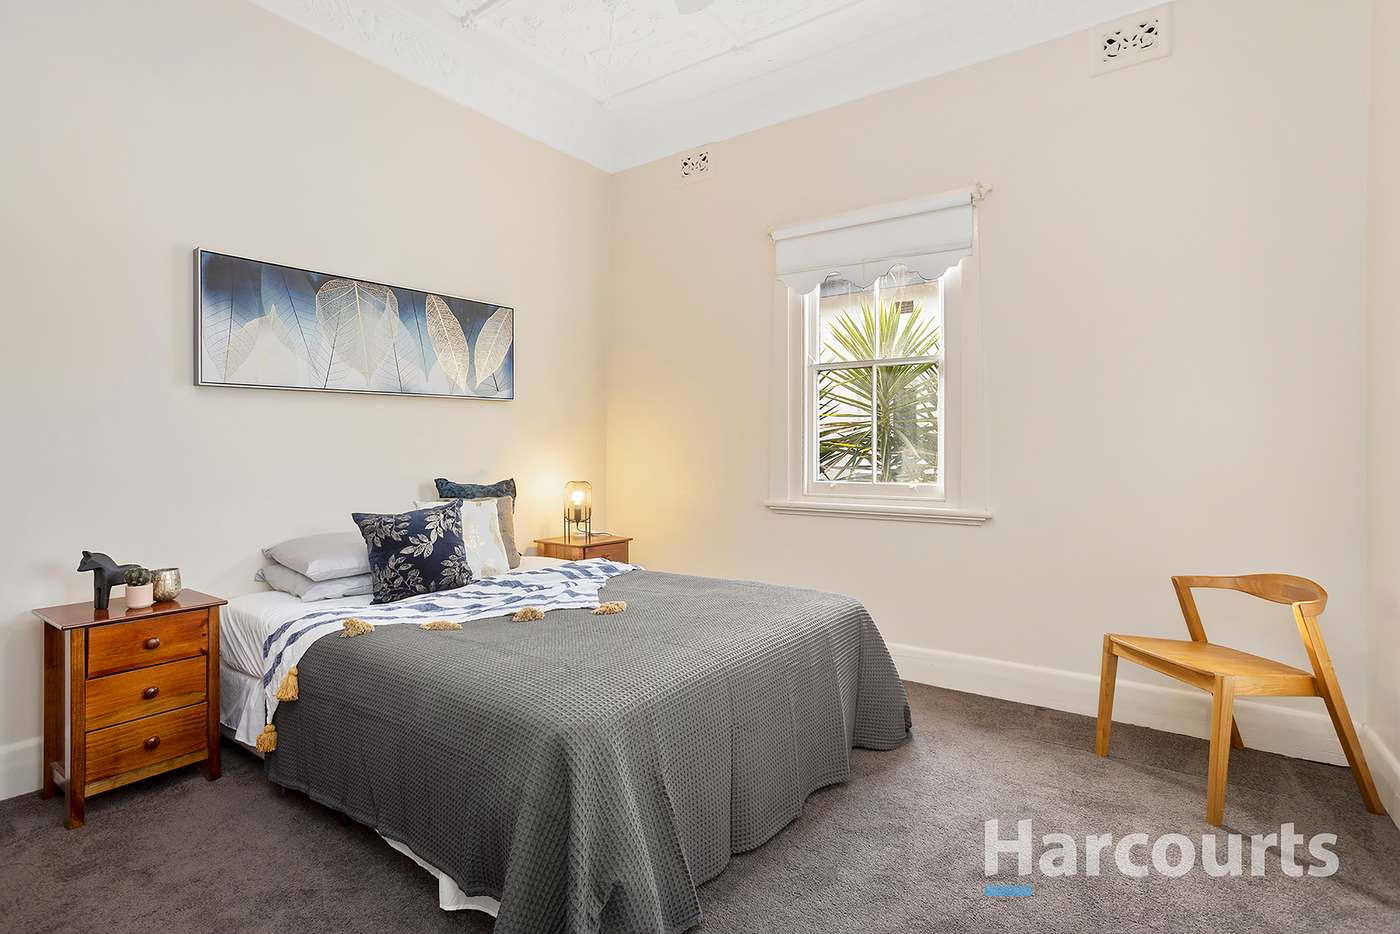 Sixth view of Homely house listing, 4 Bridge Street, Waratah NSW 2298